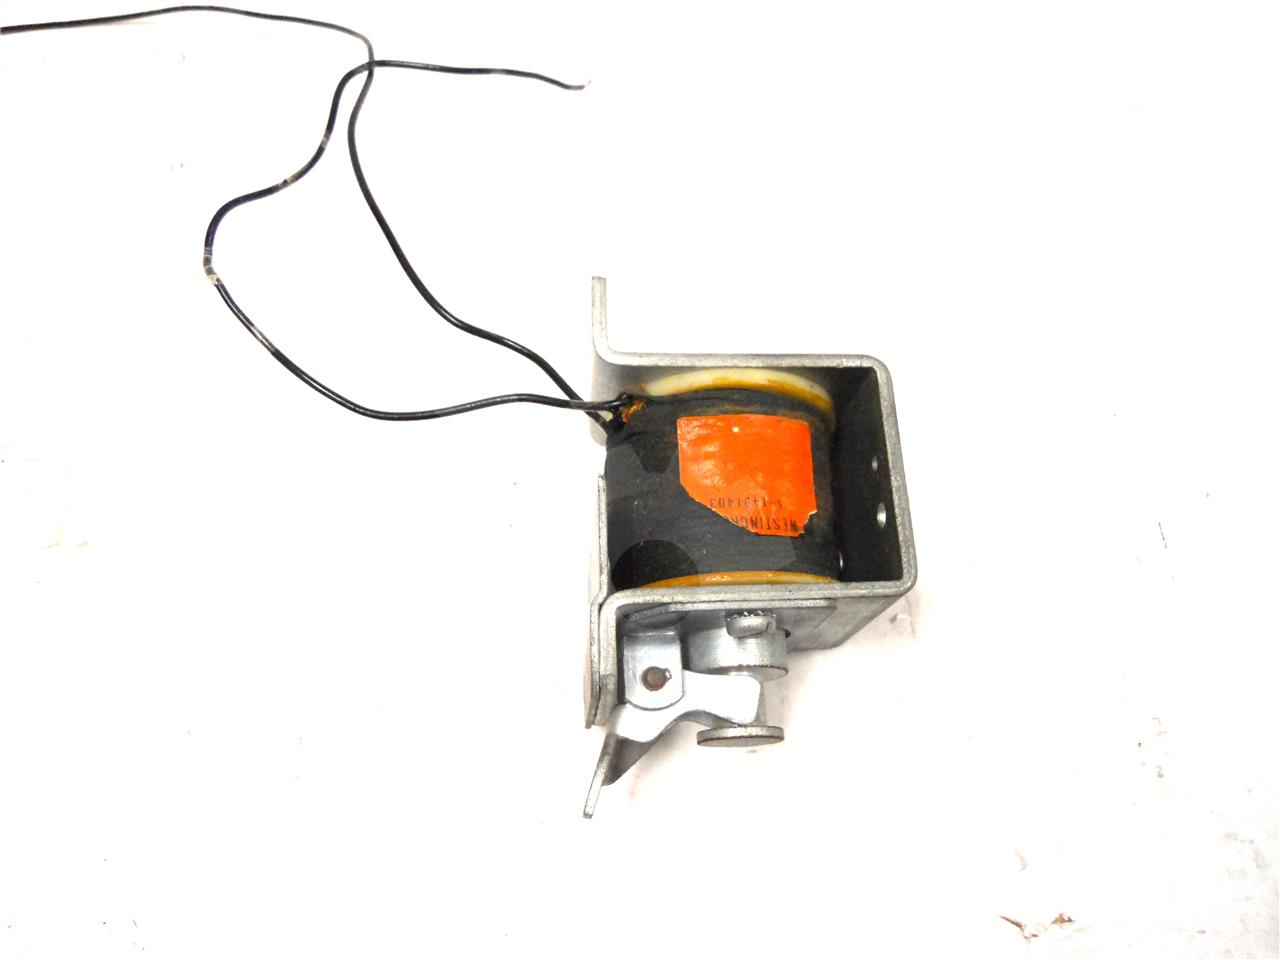 WH 125VDC/240VAC SHUNT TRIP COIL ASSEMBLY